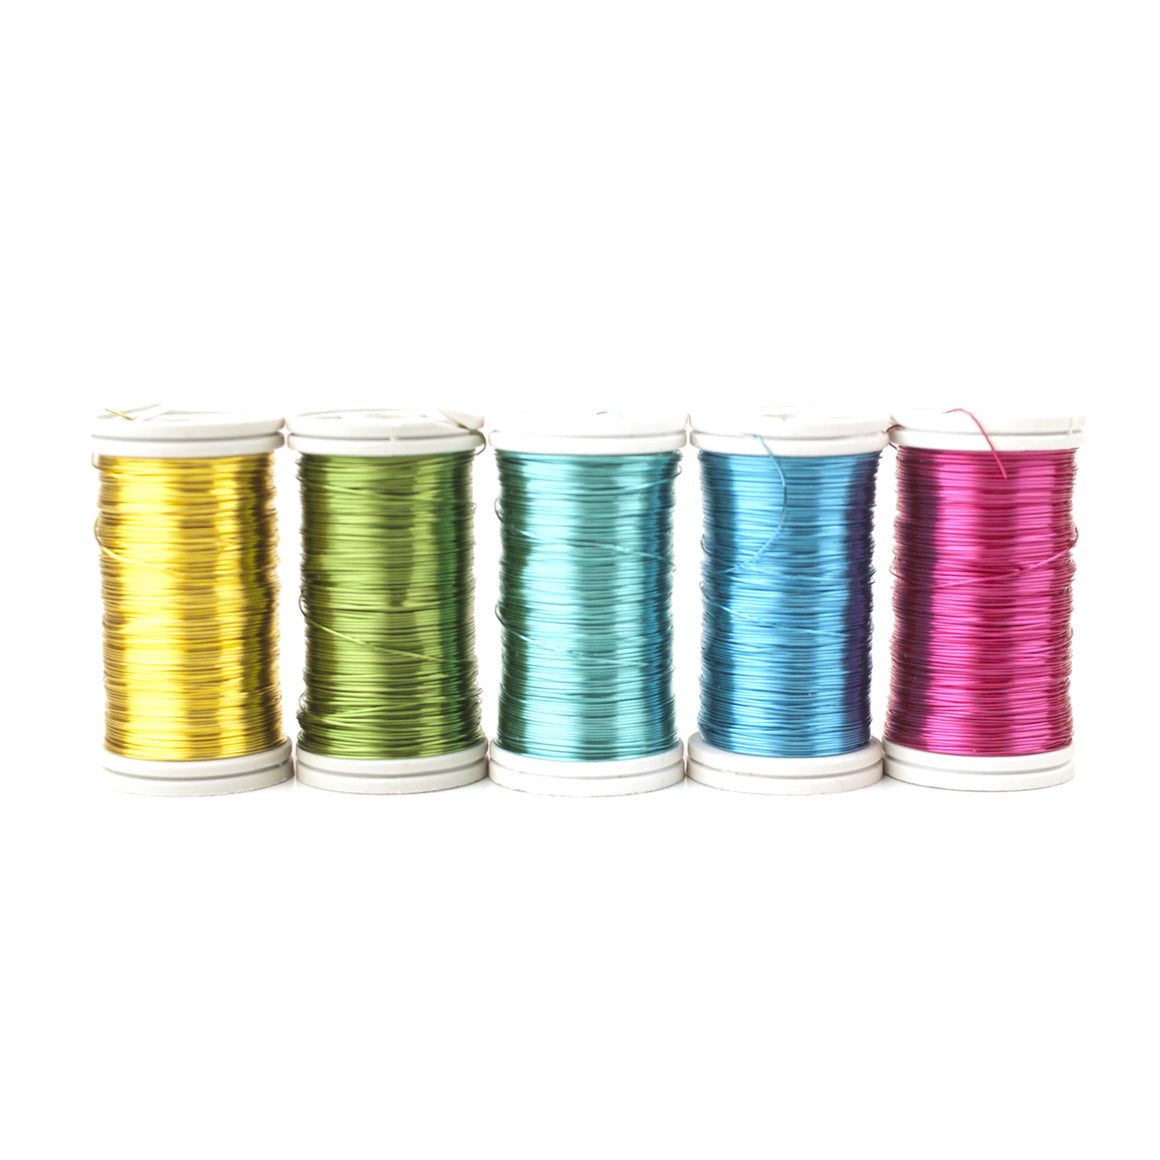 BOLD shades coated copper Wires , 65 feet spools, limited stock - Yooladesign